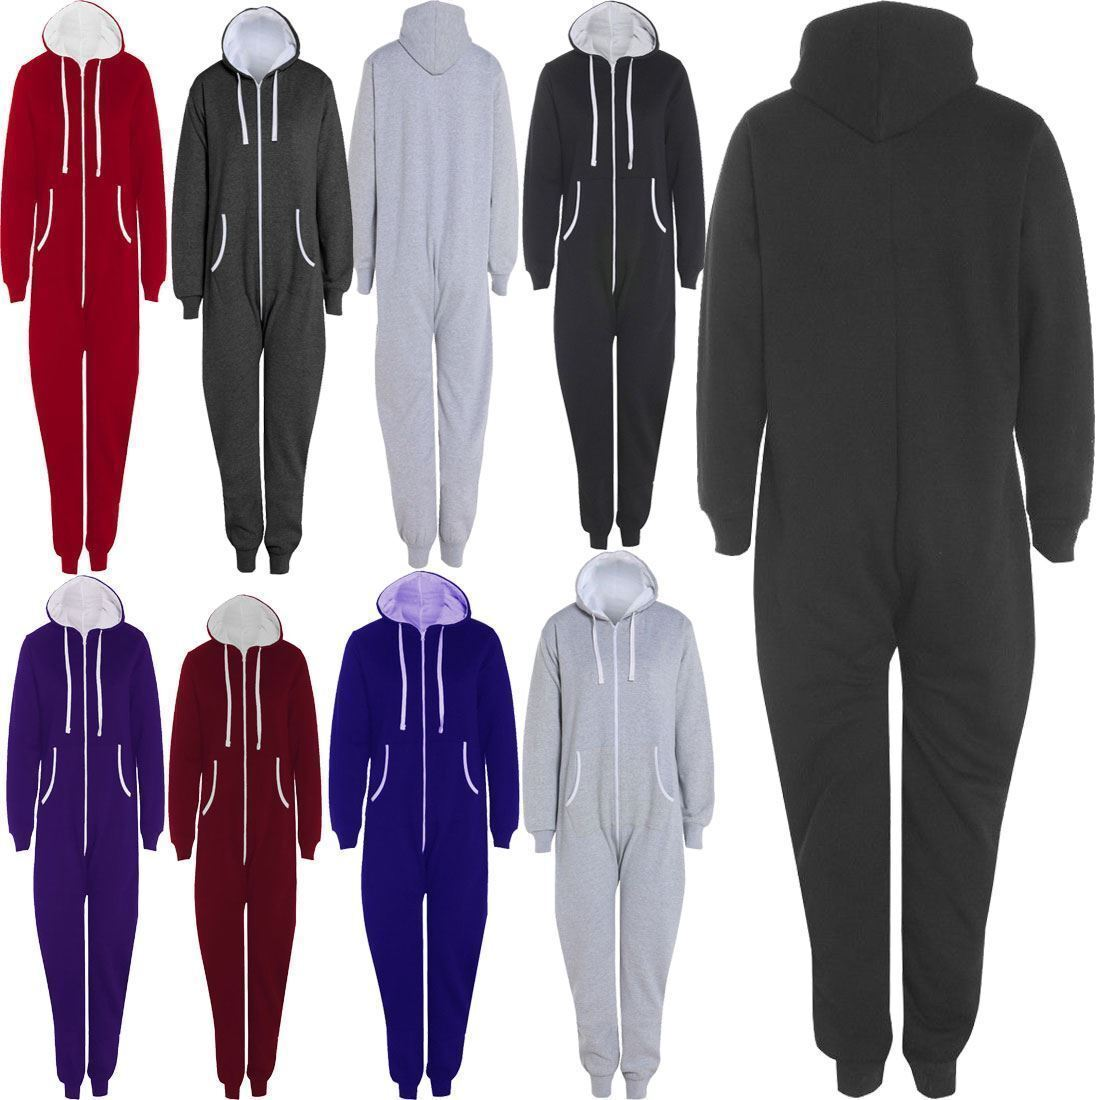 Unisex Zip Up Onsie1 Hooded Playsuit Adults Thermal All In One Sports Jumpsuit